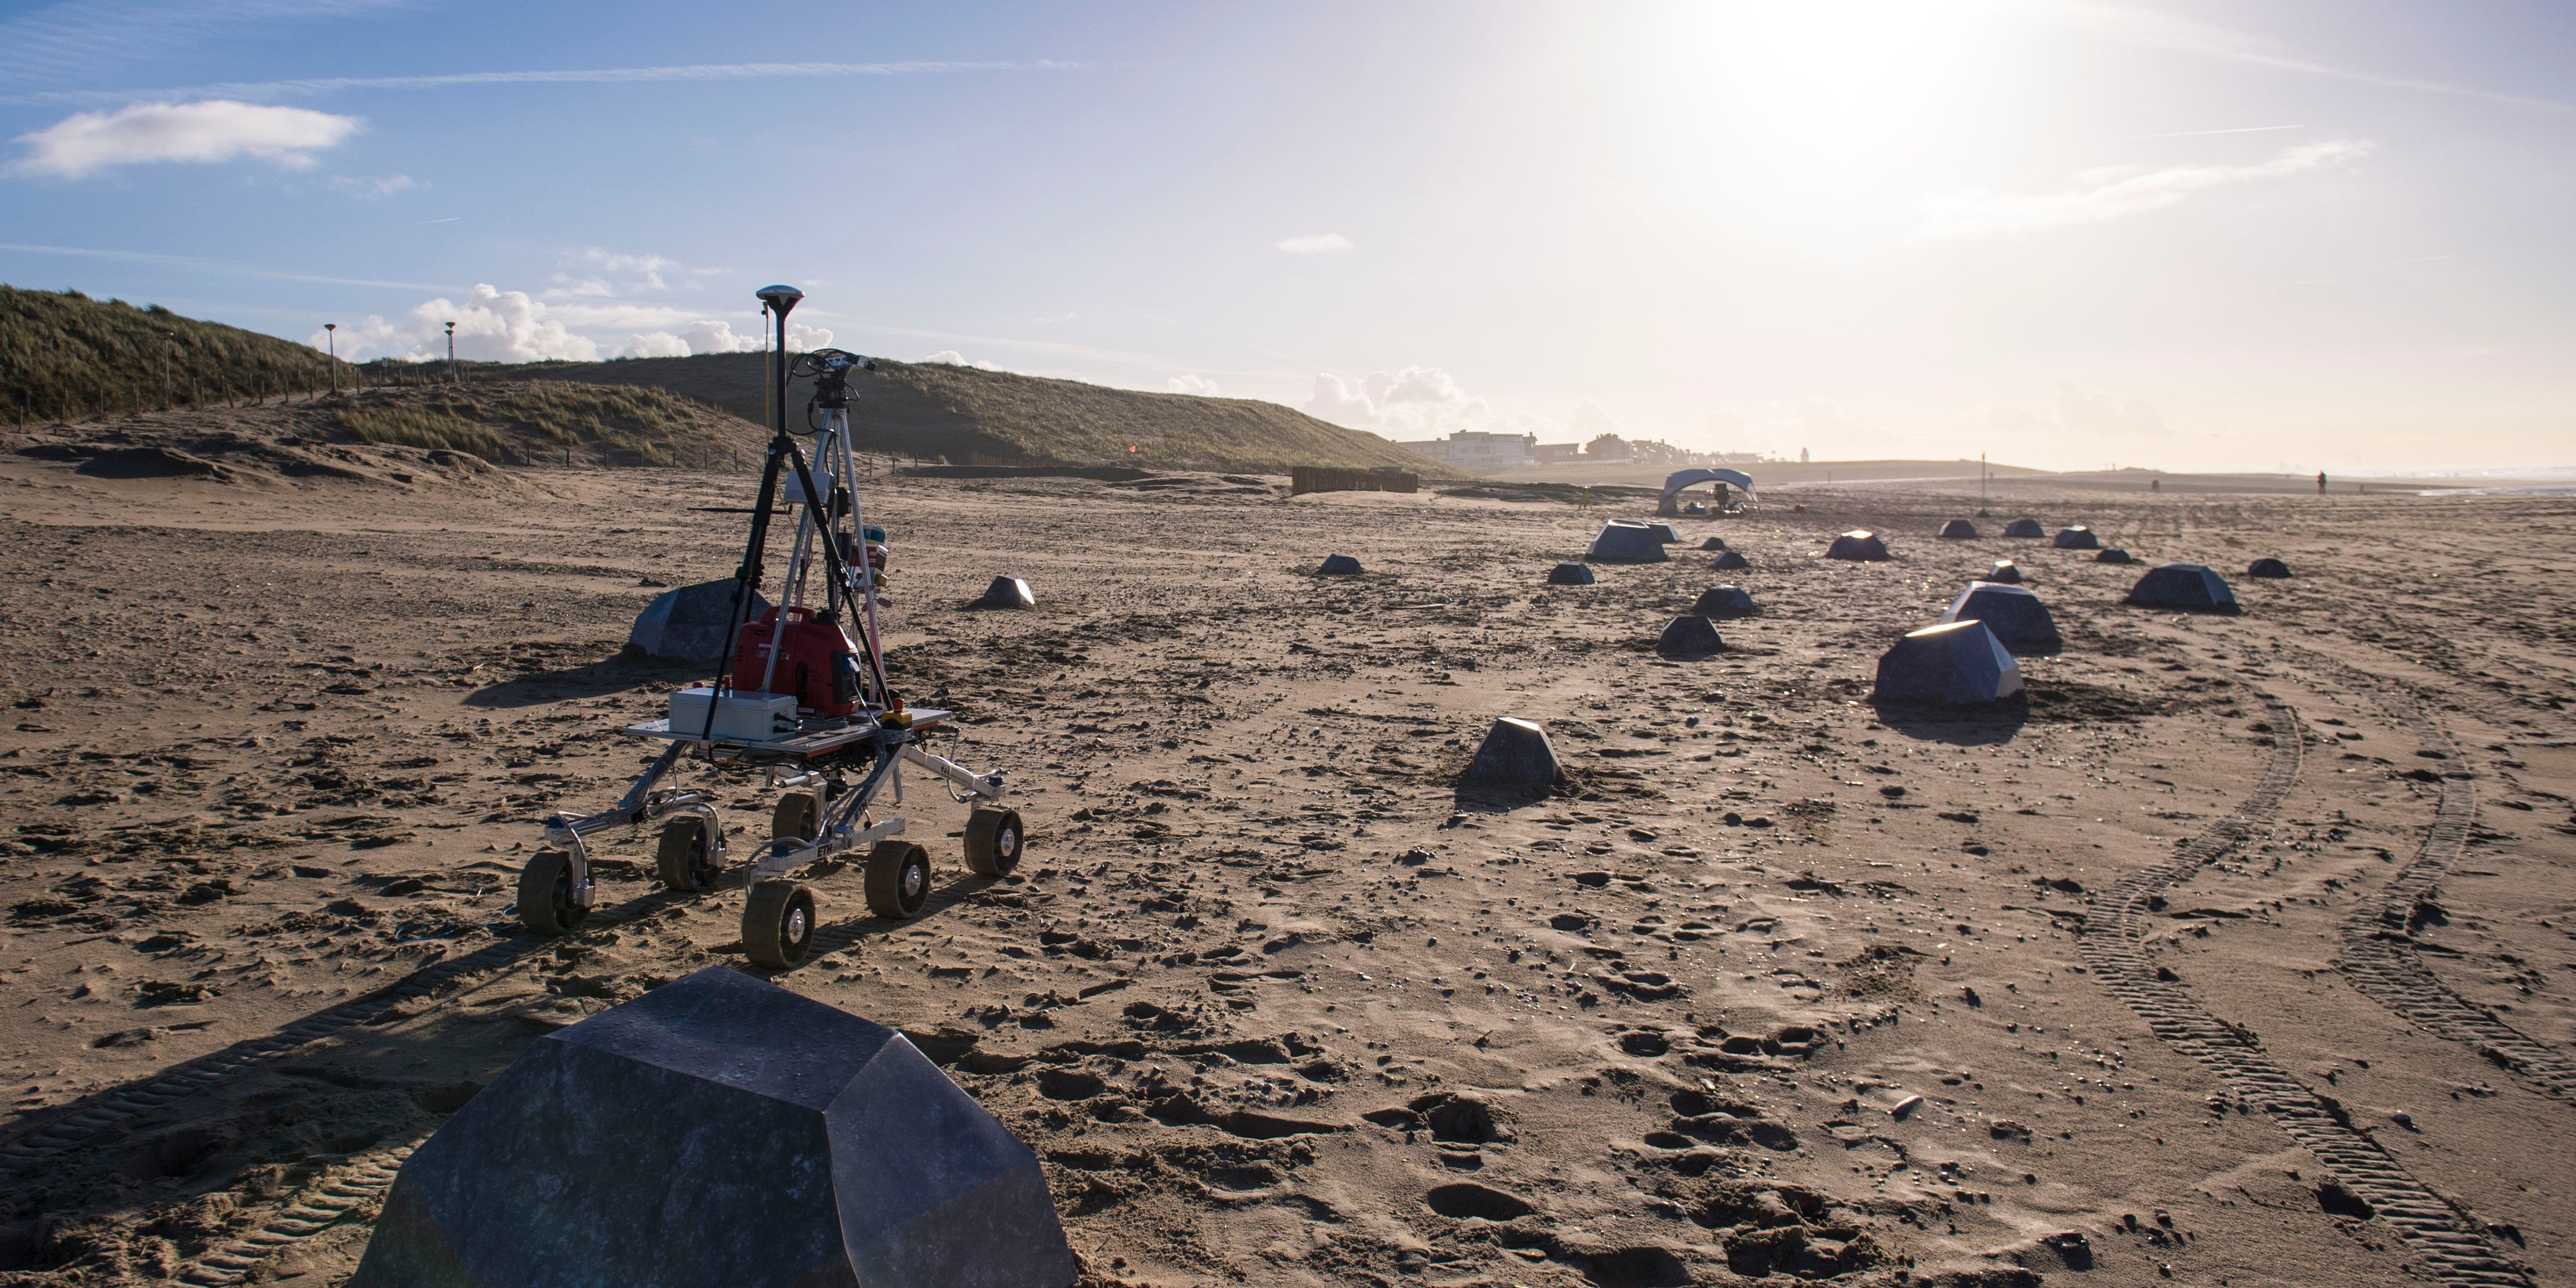 This Beach Could (Almost) Be on Mars